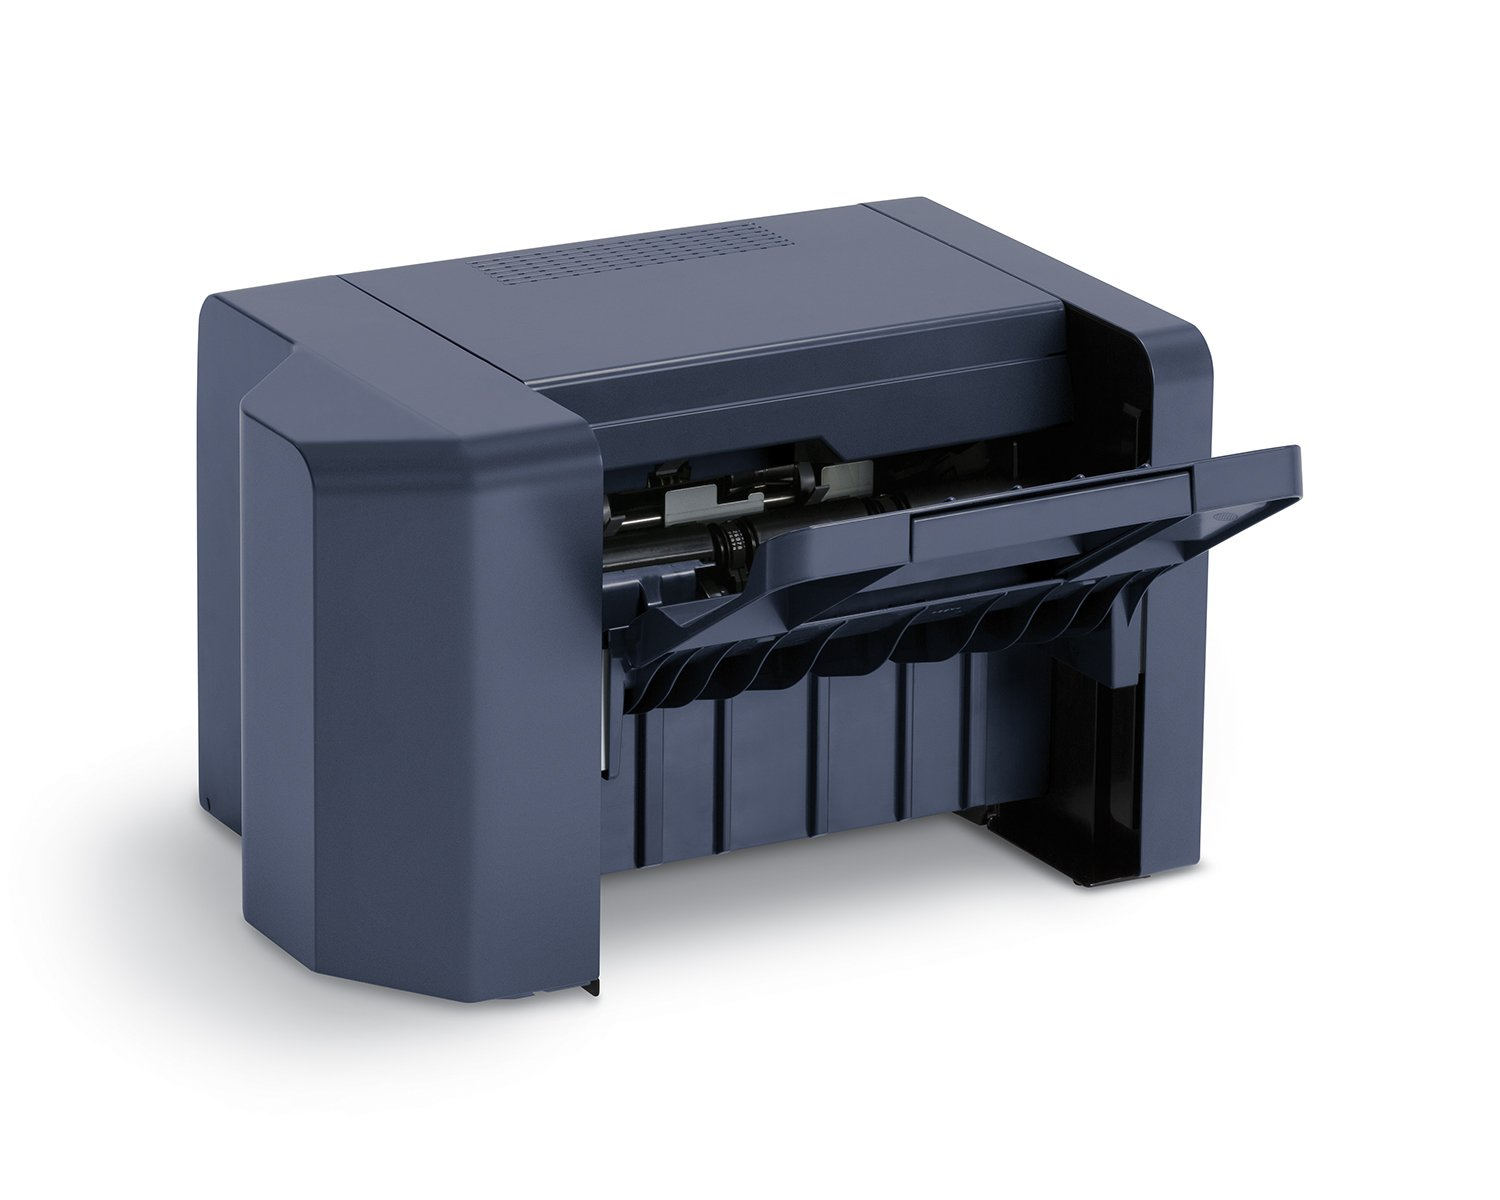 Xerox 097S04952 Printer Finisher for the VersaLink C600 and C605 collates and staples sets of up to 50 sheets a 500-sheet output tray